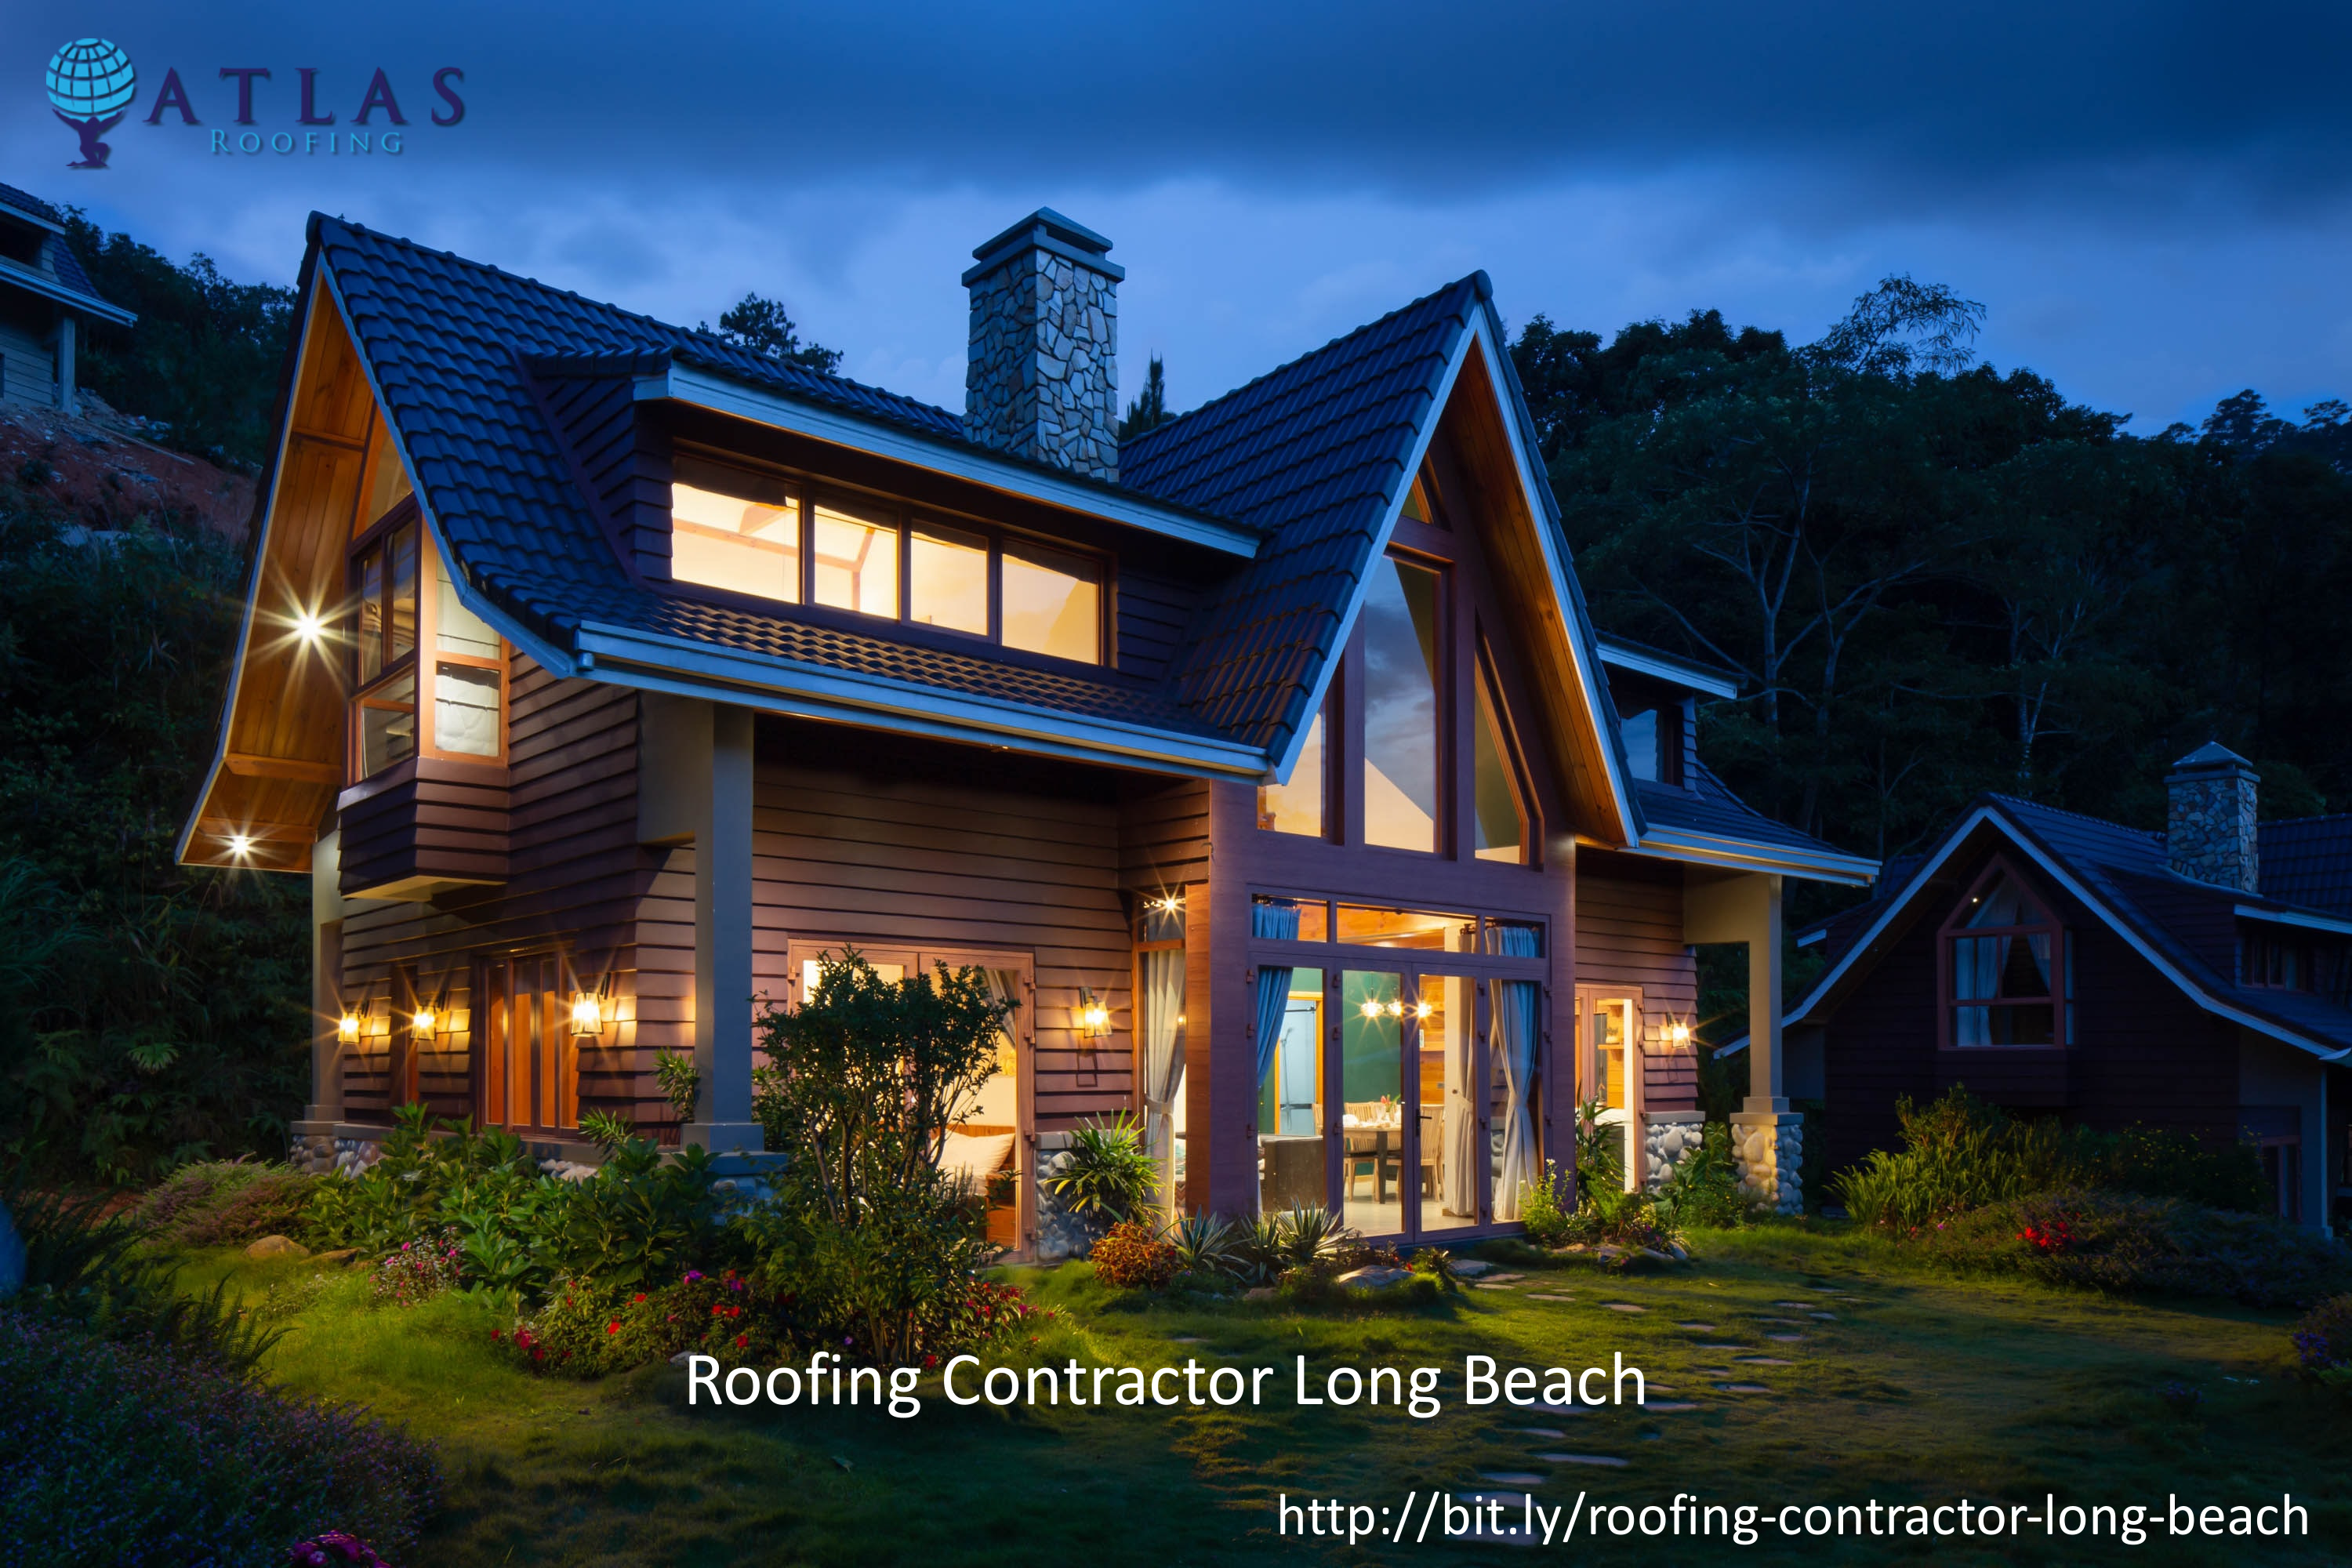 Here Are the Best Roofing Products According to Atlas Roofing